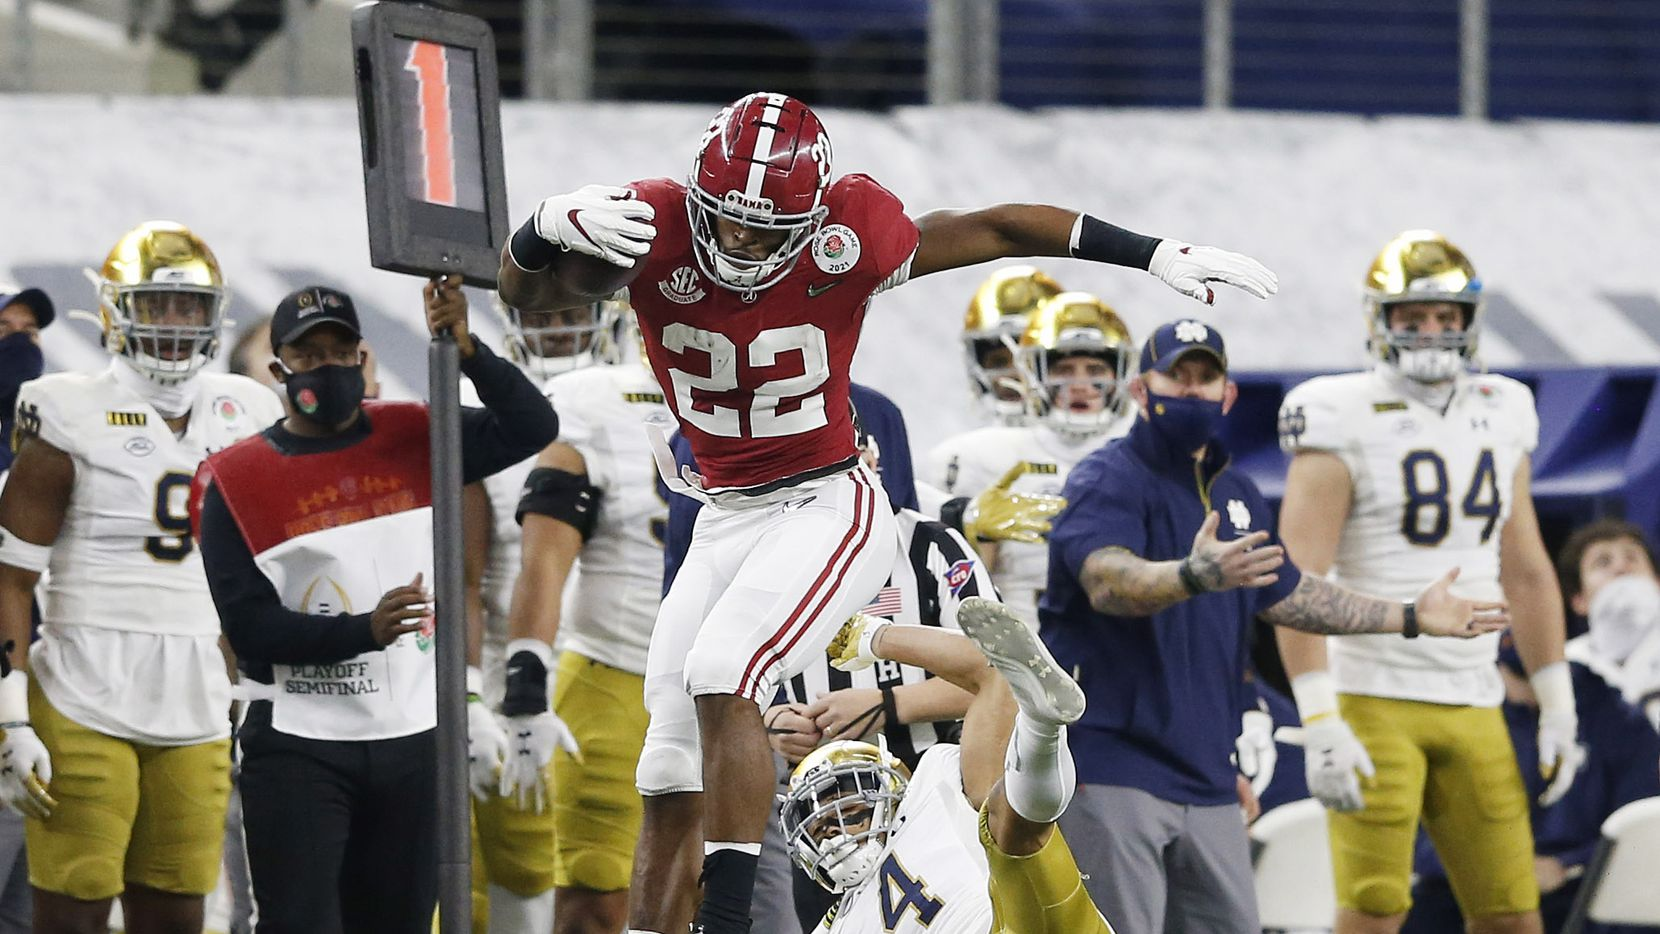 Alabama Crimson Tide running back Najee Harris (22) leaps over Notre Dame Fighting Irish cornerback Nick McCloud (4) on a play during the first half of play at the Rose Bowl NCAA college football playoff semifinal at AT&T Stadium on Friday, December 30, 2020 in Arlington, Texas.